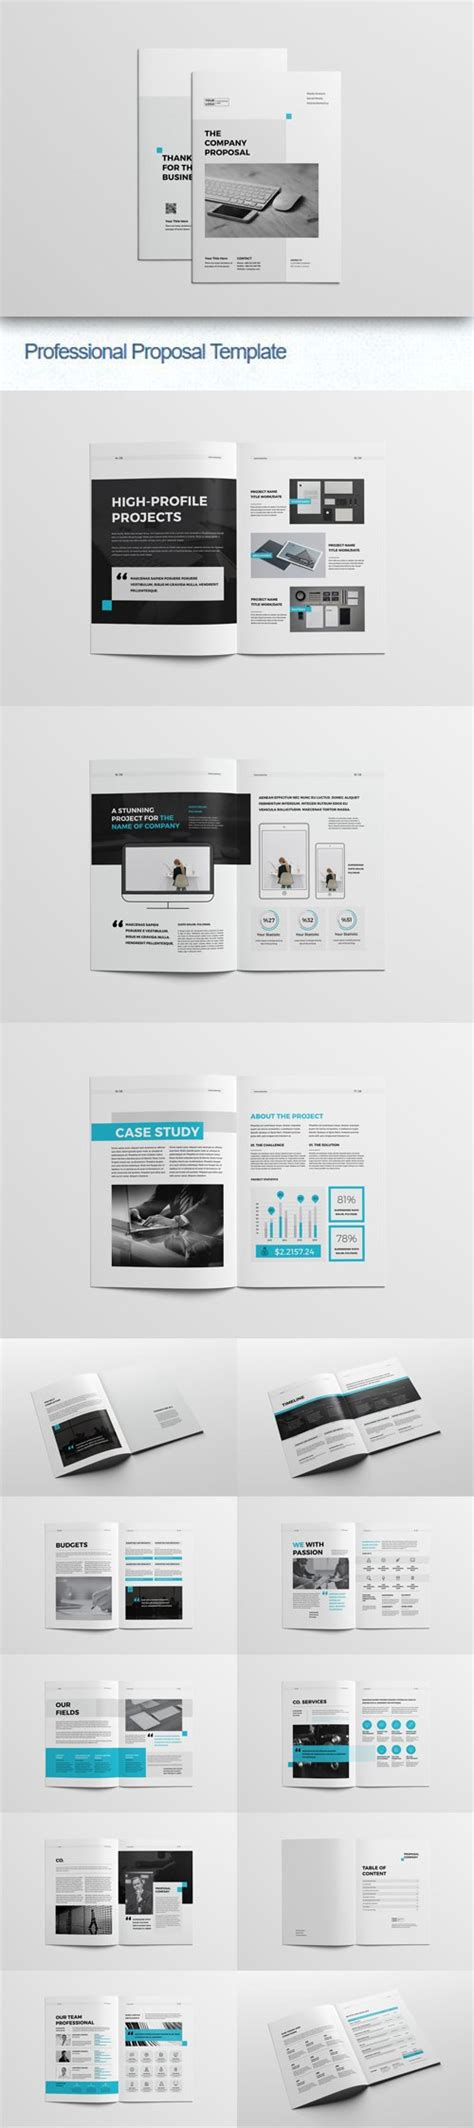 professional proposal indesign indd idml template